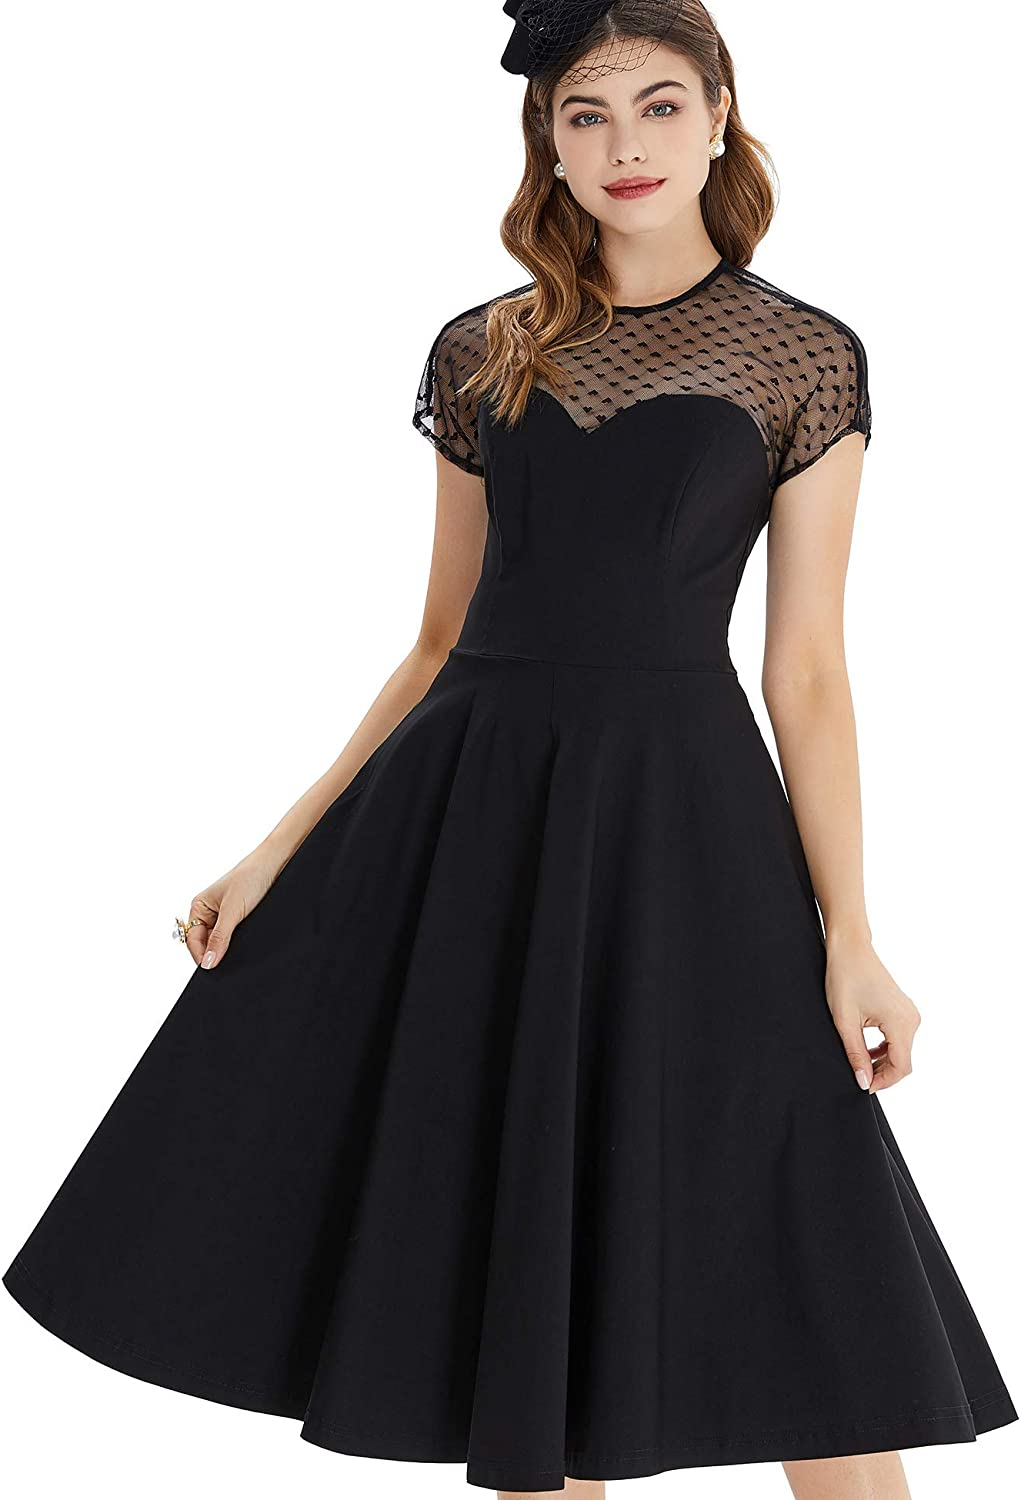 GownTown Women Splicing Swing Dress Party Picnic Cocktail Dress